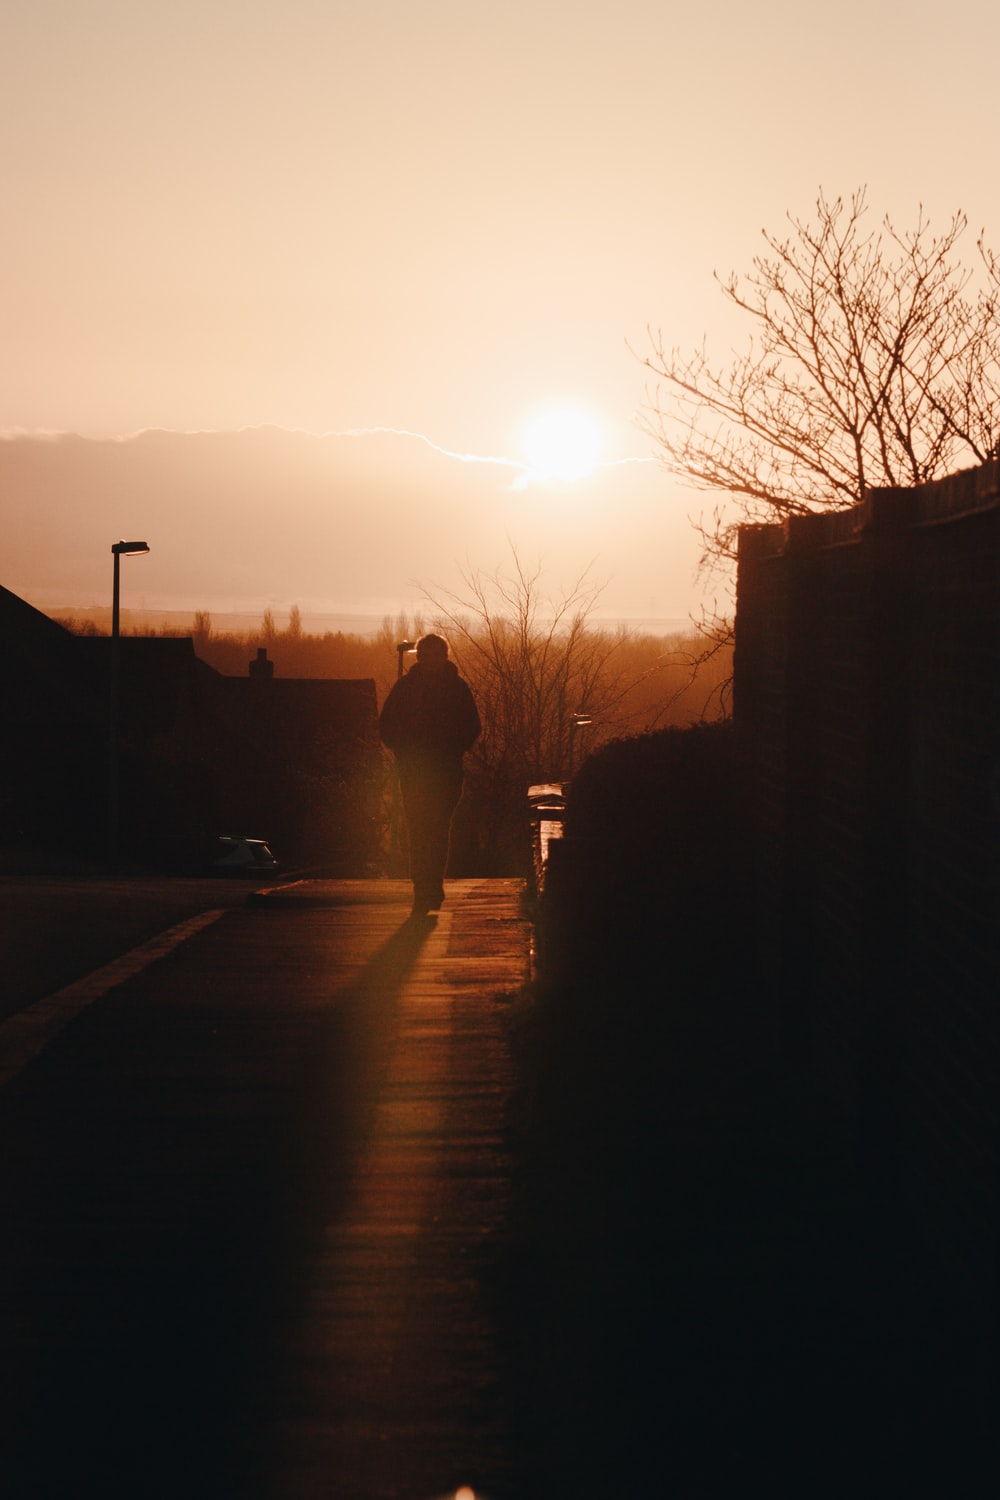 silhouette photo of man walking on street during golden hour